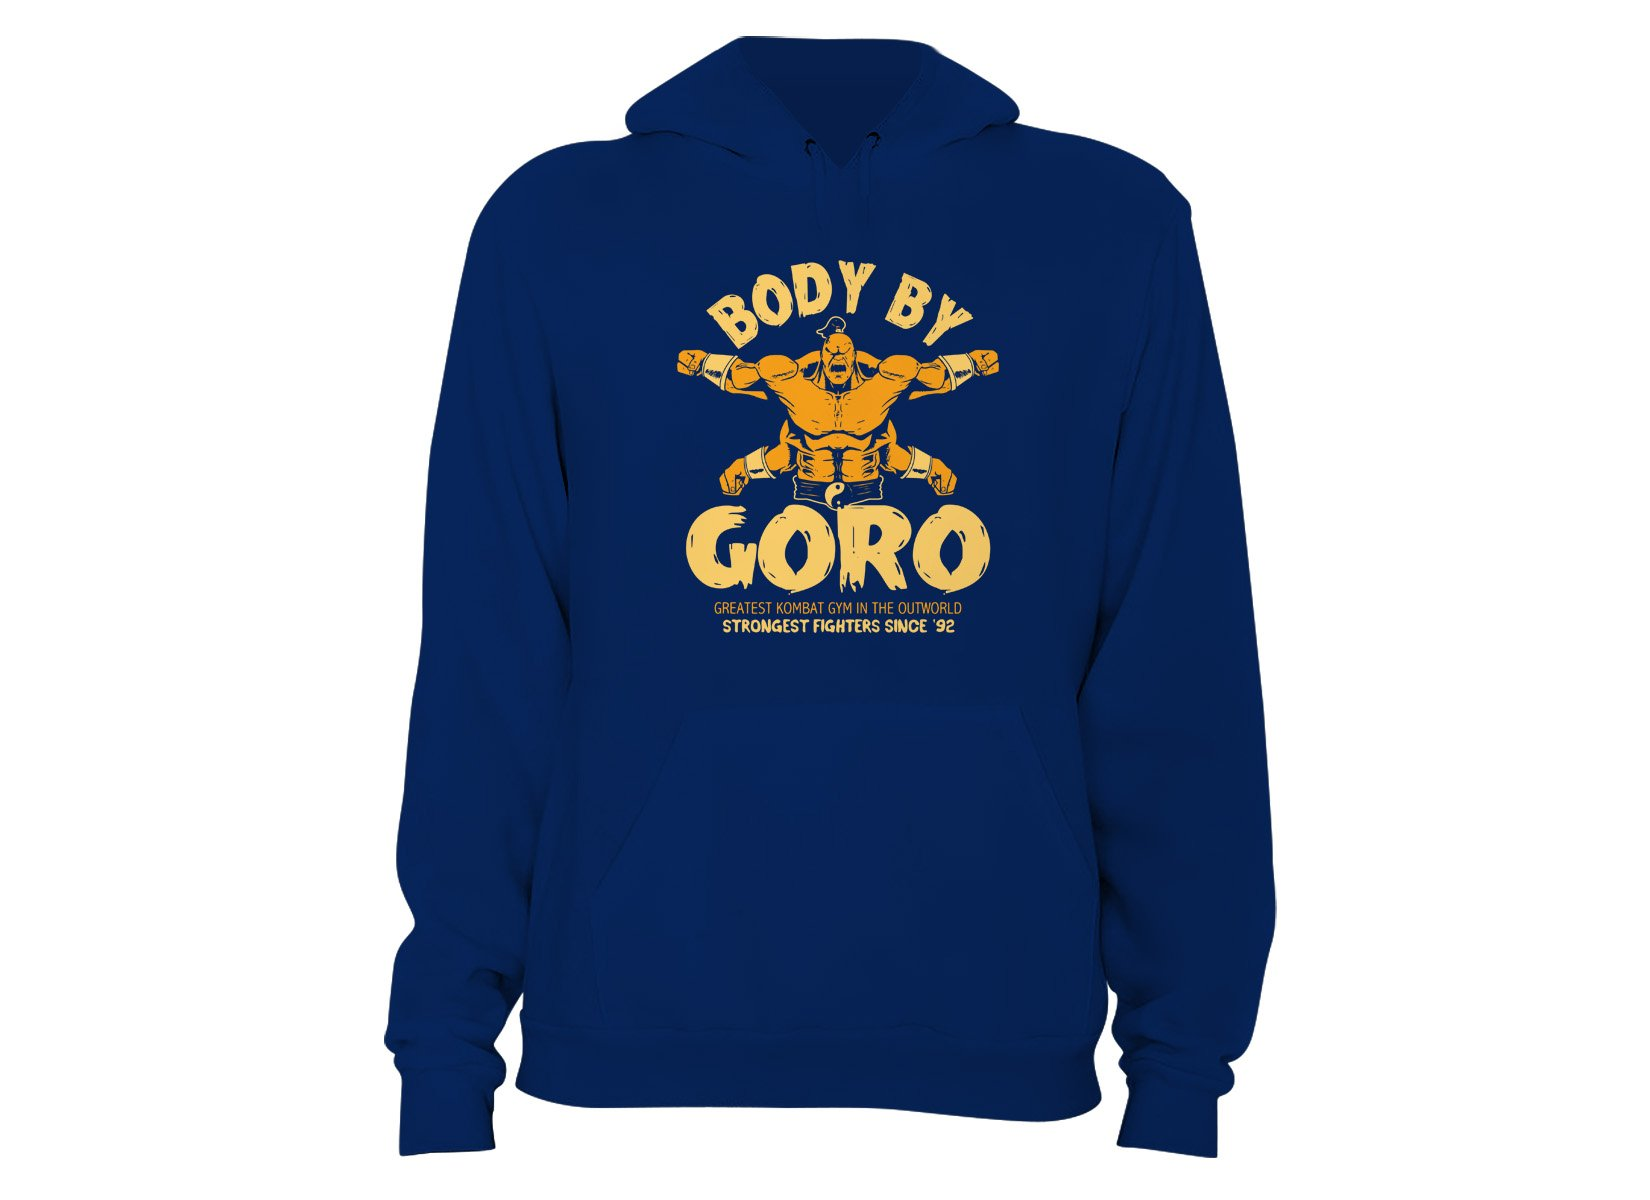 Body By Goro on Hoodie